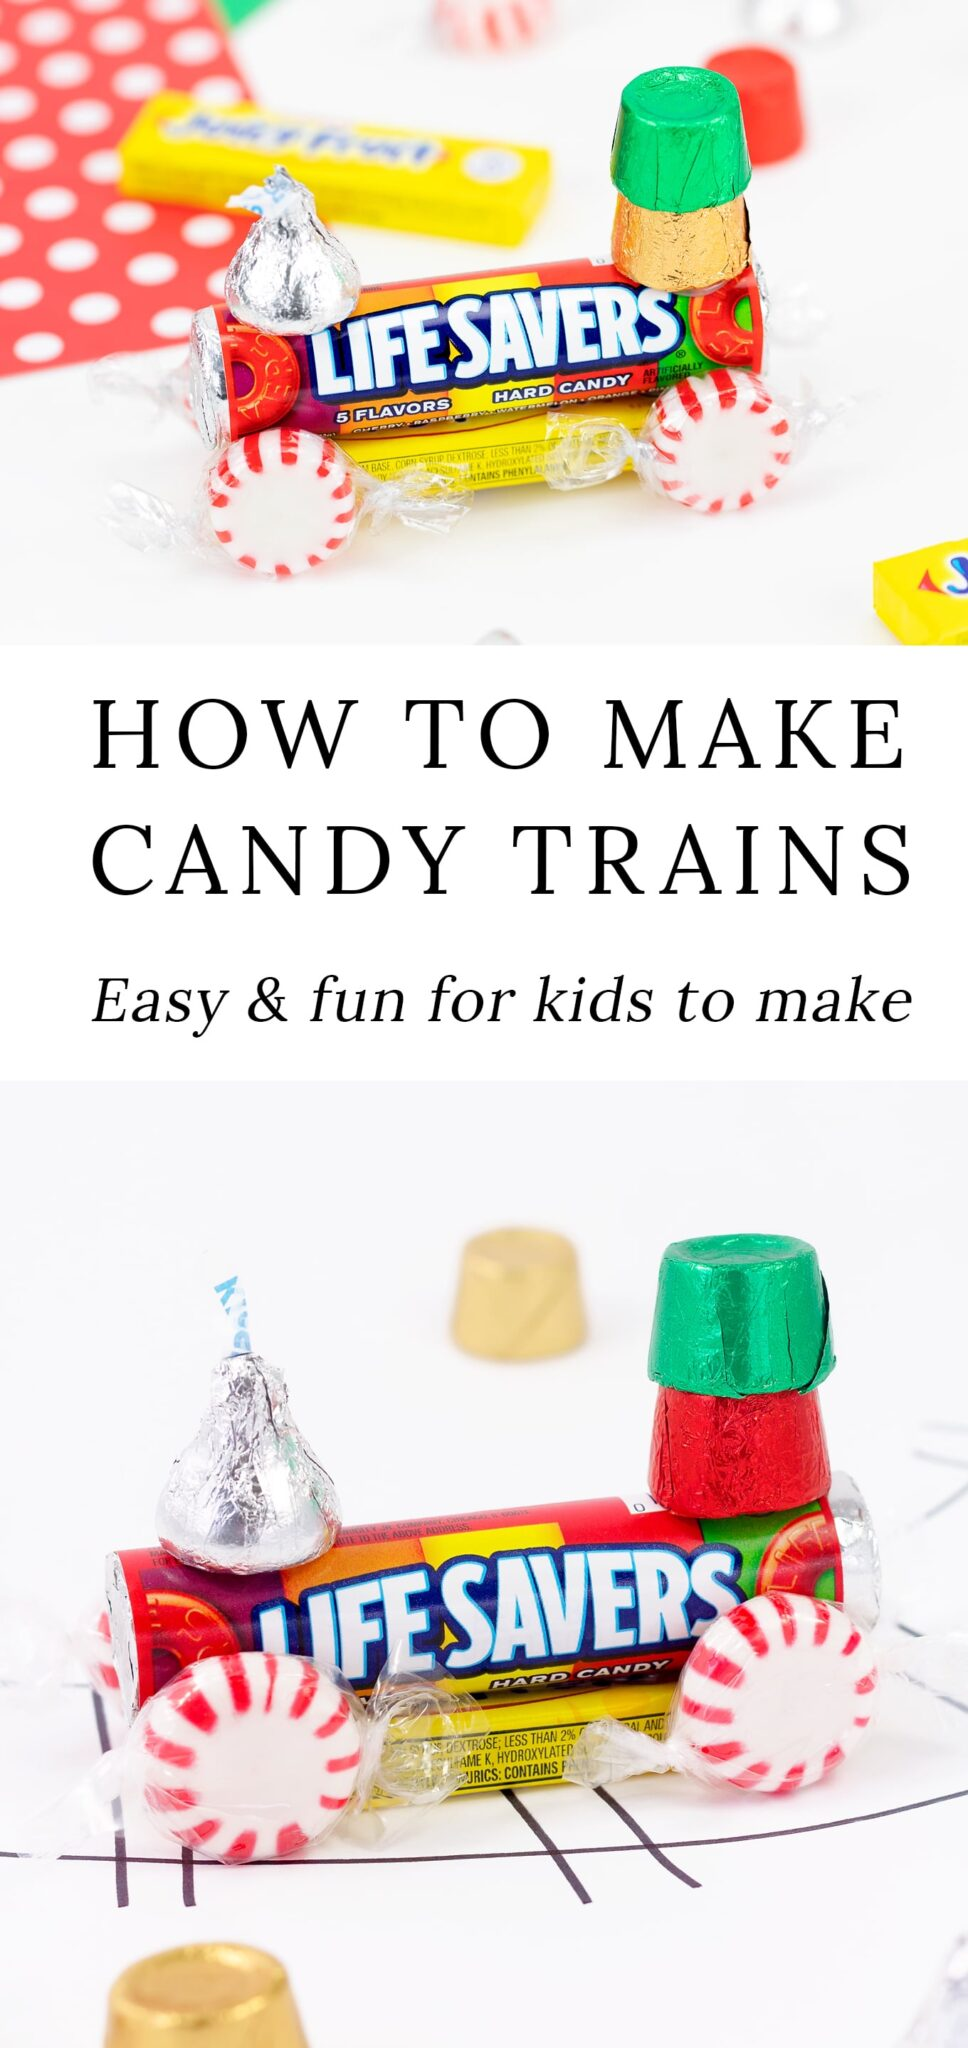 In this easy step-by-step tutorial and video, learn how to make a classic Candy Train from Life Savers, peppermints, Hershey's Kisses, and more. This adorable Christmas craft is fun for kids to make at school, holiday parties, birthday parties, and home! It looks so adorable hanging from the Christmas tree. #christmas #kids via @firefliesandmudpies